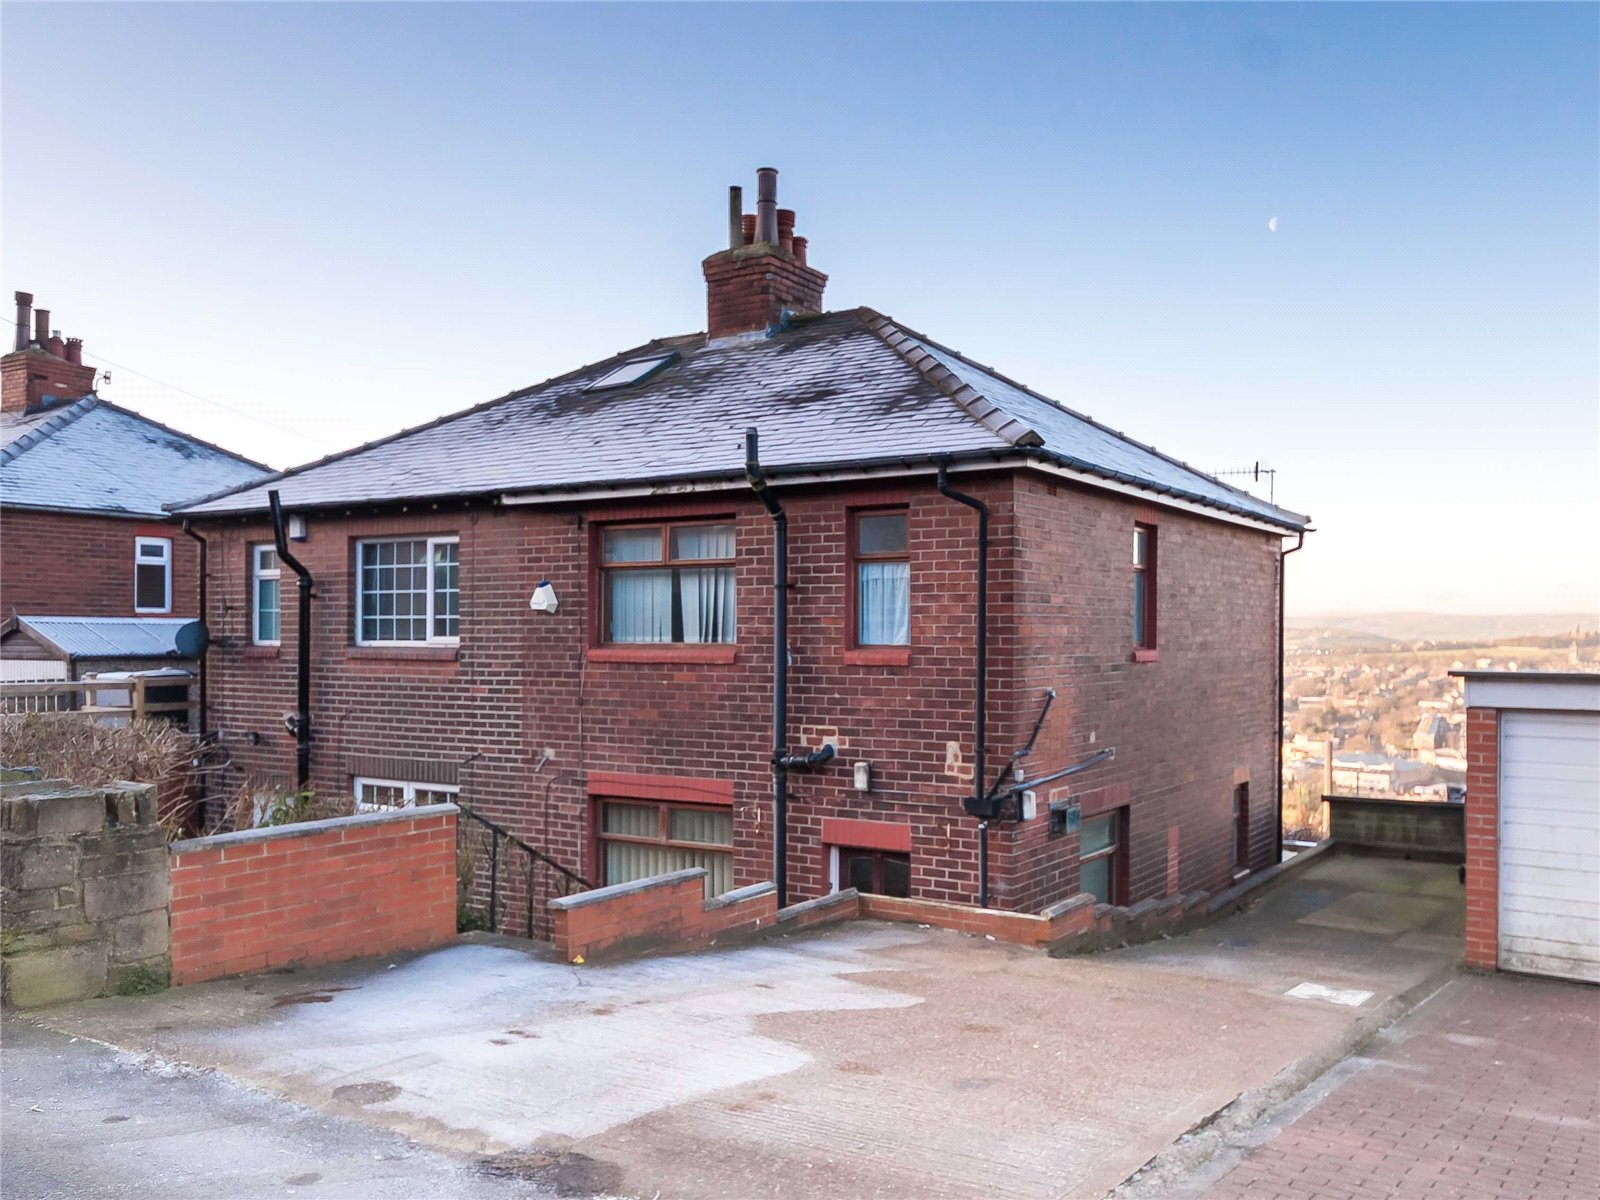 3 Bedrooms Semi Detached House for sale in Blaithroyd Lane, Southowram, HALIFAX, West Yorkshire, HX3